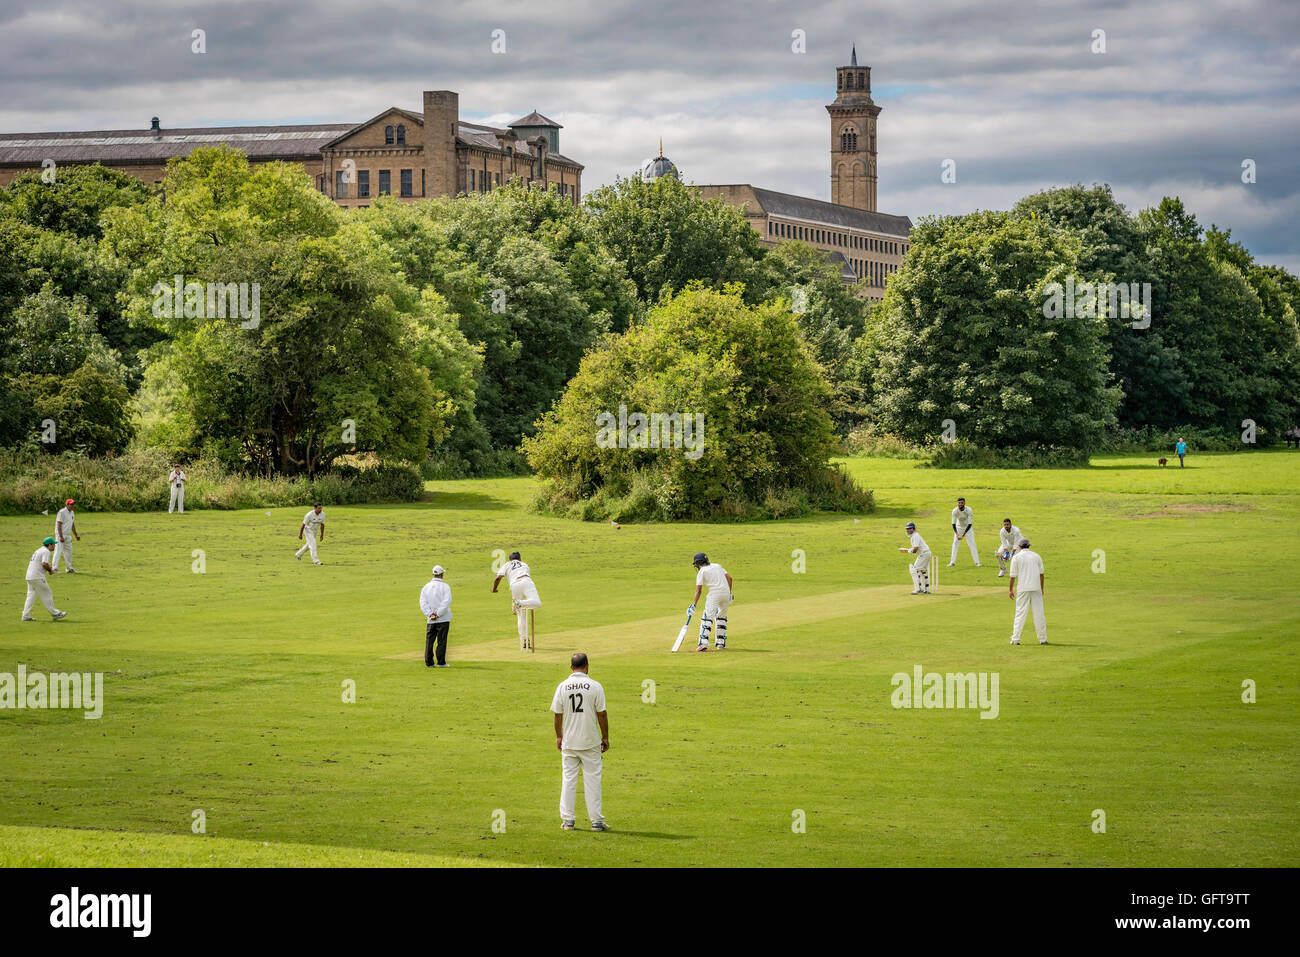 A cricket match under the New Mill at Saltaire in West Yorkshire. An NHS establishment beside the river Aire. - Stock Image